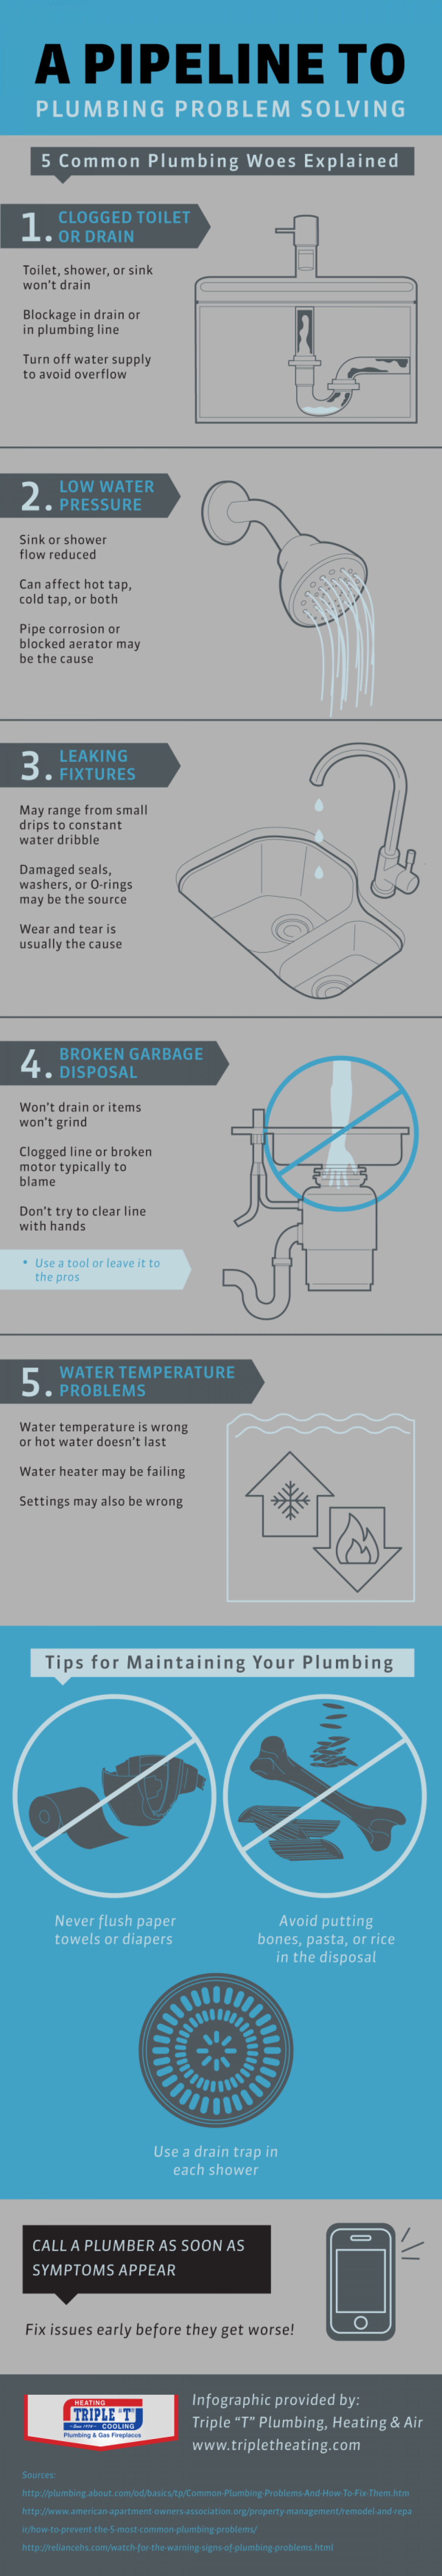 A Pipeline to Plumbing Problem Solving Infographic